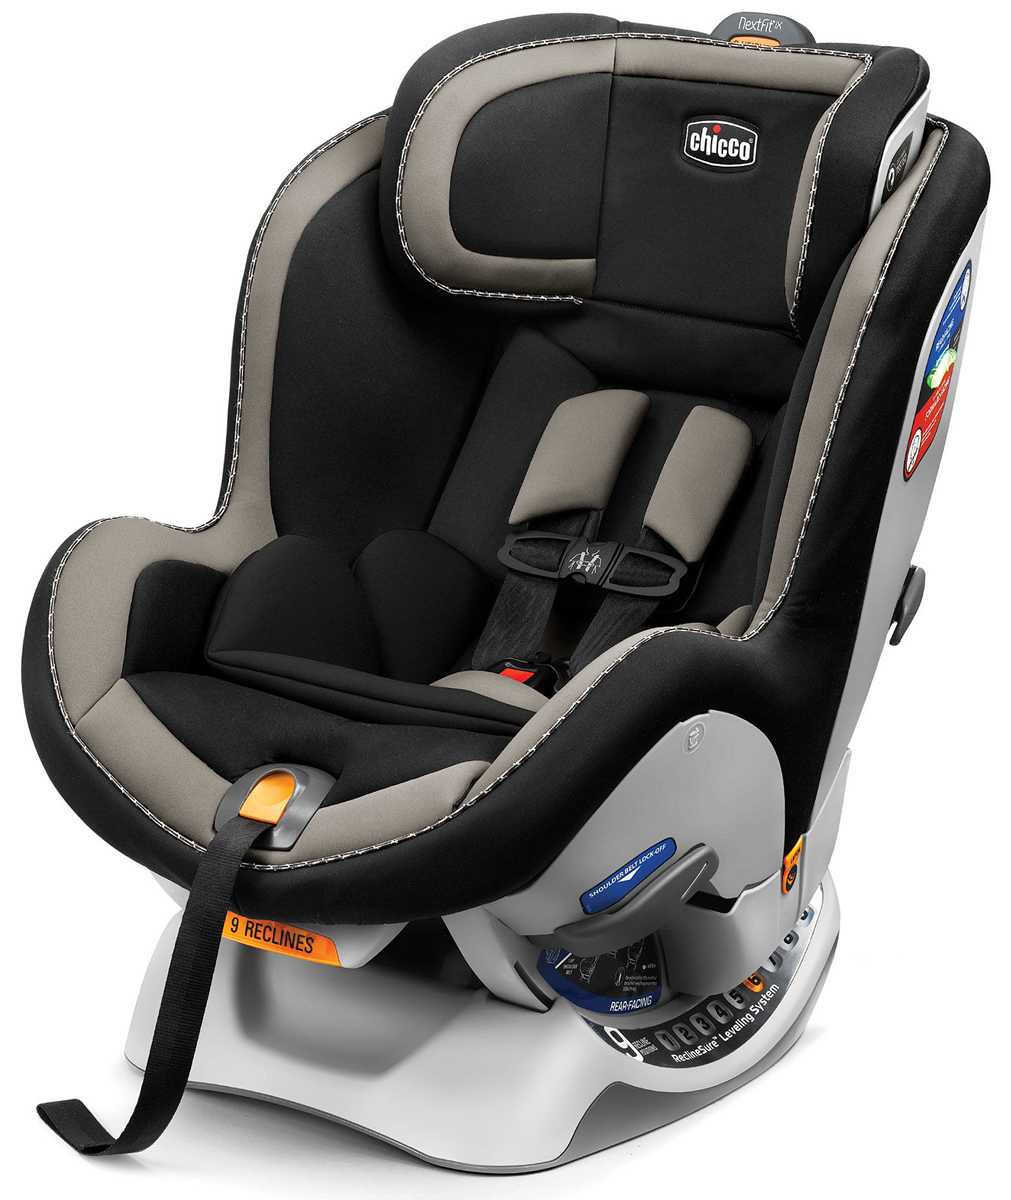 Chicco NextFit iX Convertible Car Seat - Sandalwood